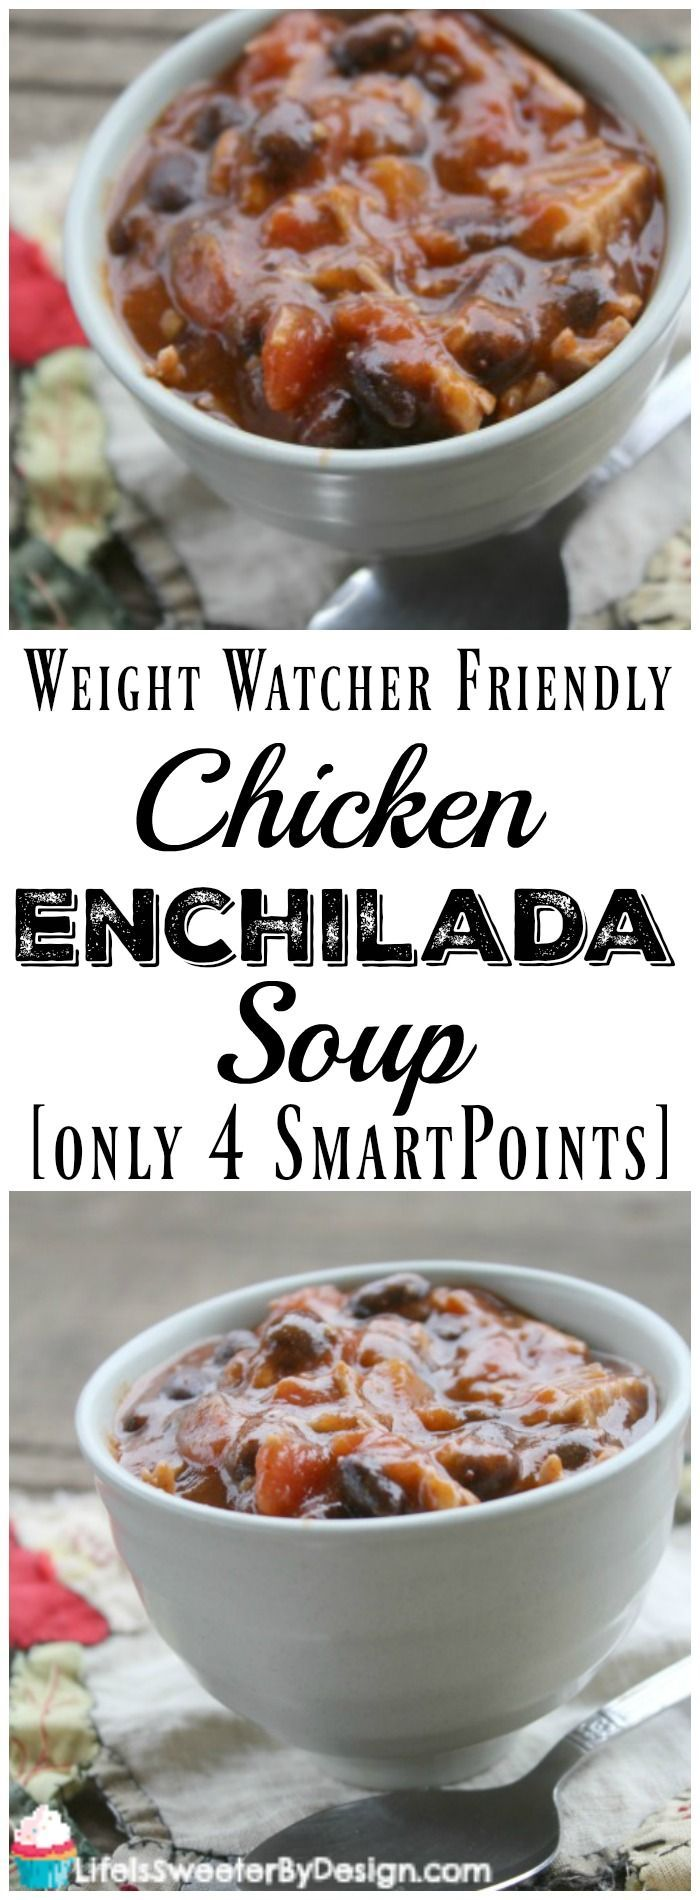 Weight Watcher Friendly Chicken Enchilada Soup is only 4 SmartPoints per serving. This is a hearty soup and is perfect for people on the Weight Watchers Beyond the Scale program!